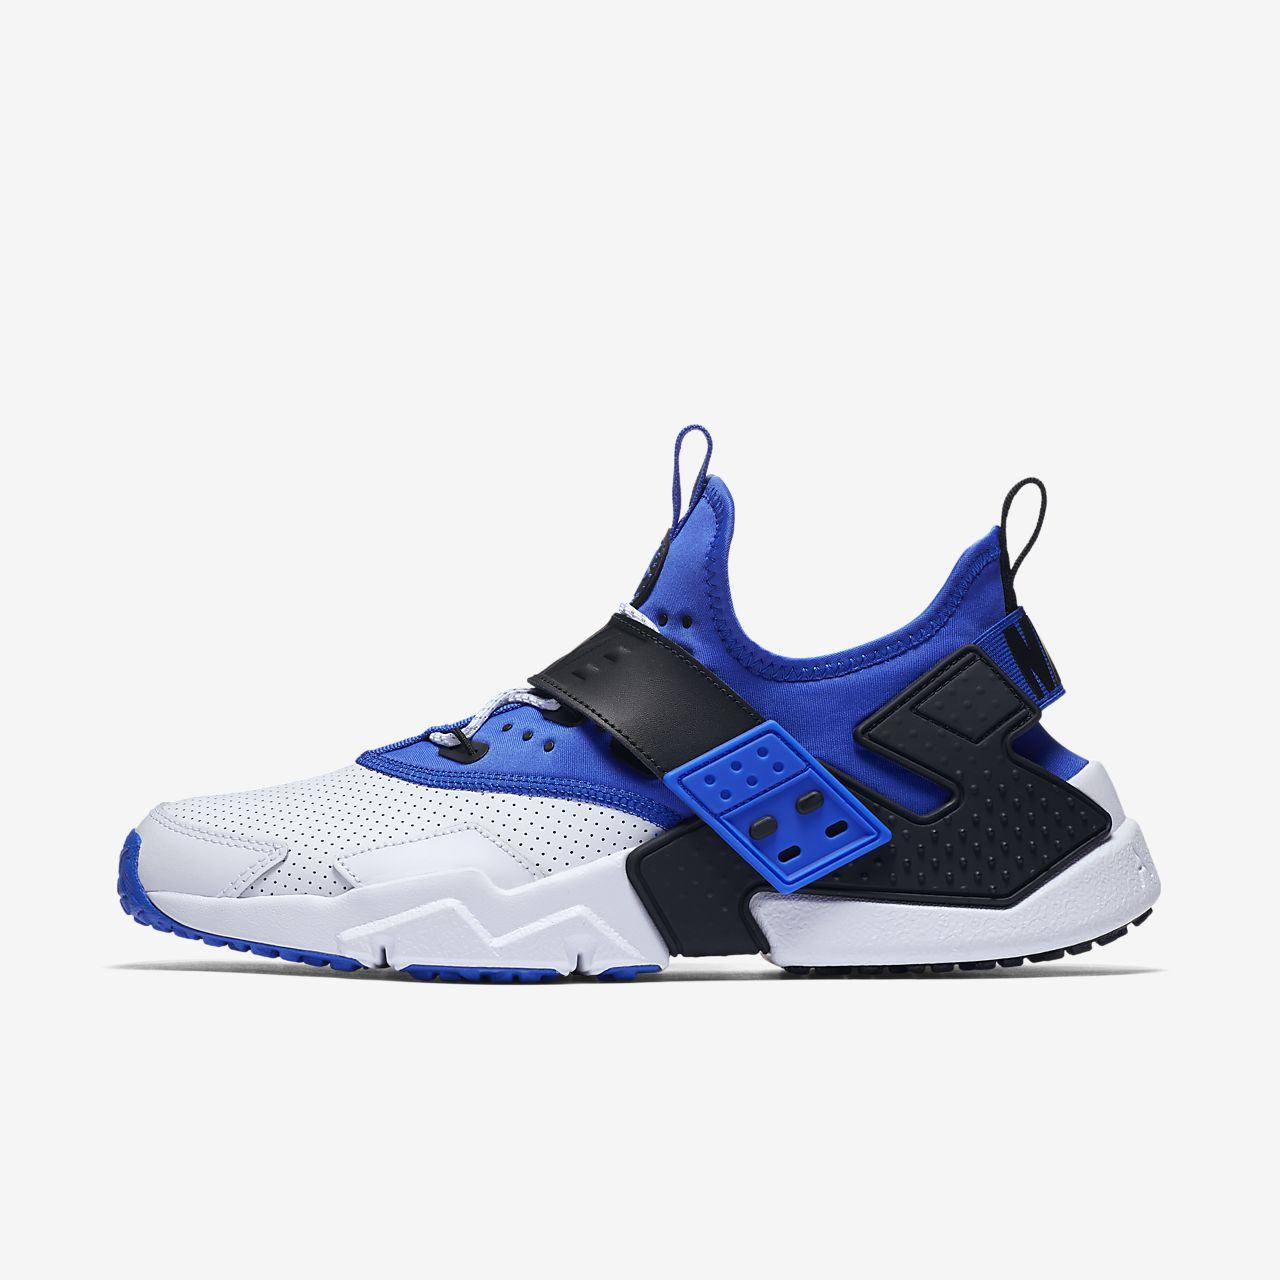 9979f18c98f7 Nike Air Huarache Drift Premium Men u0027s Shoe ...